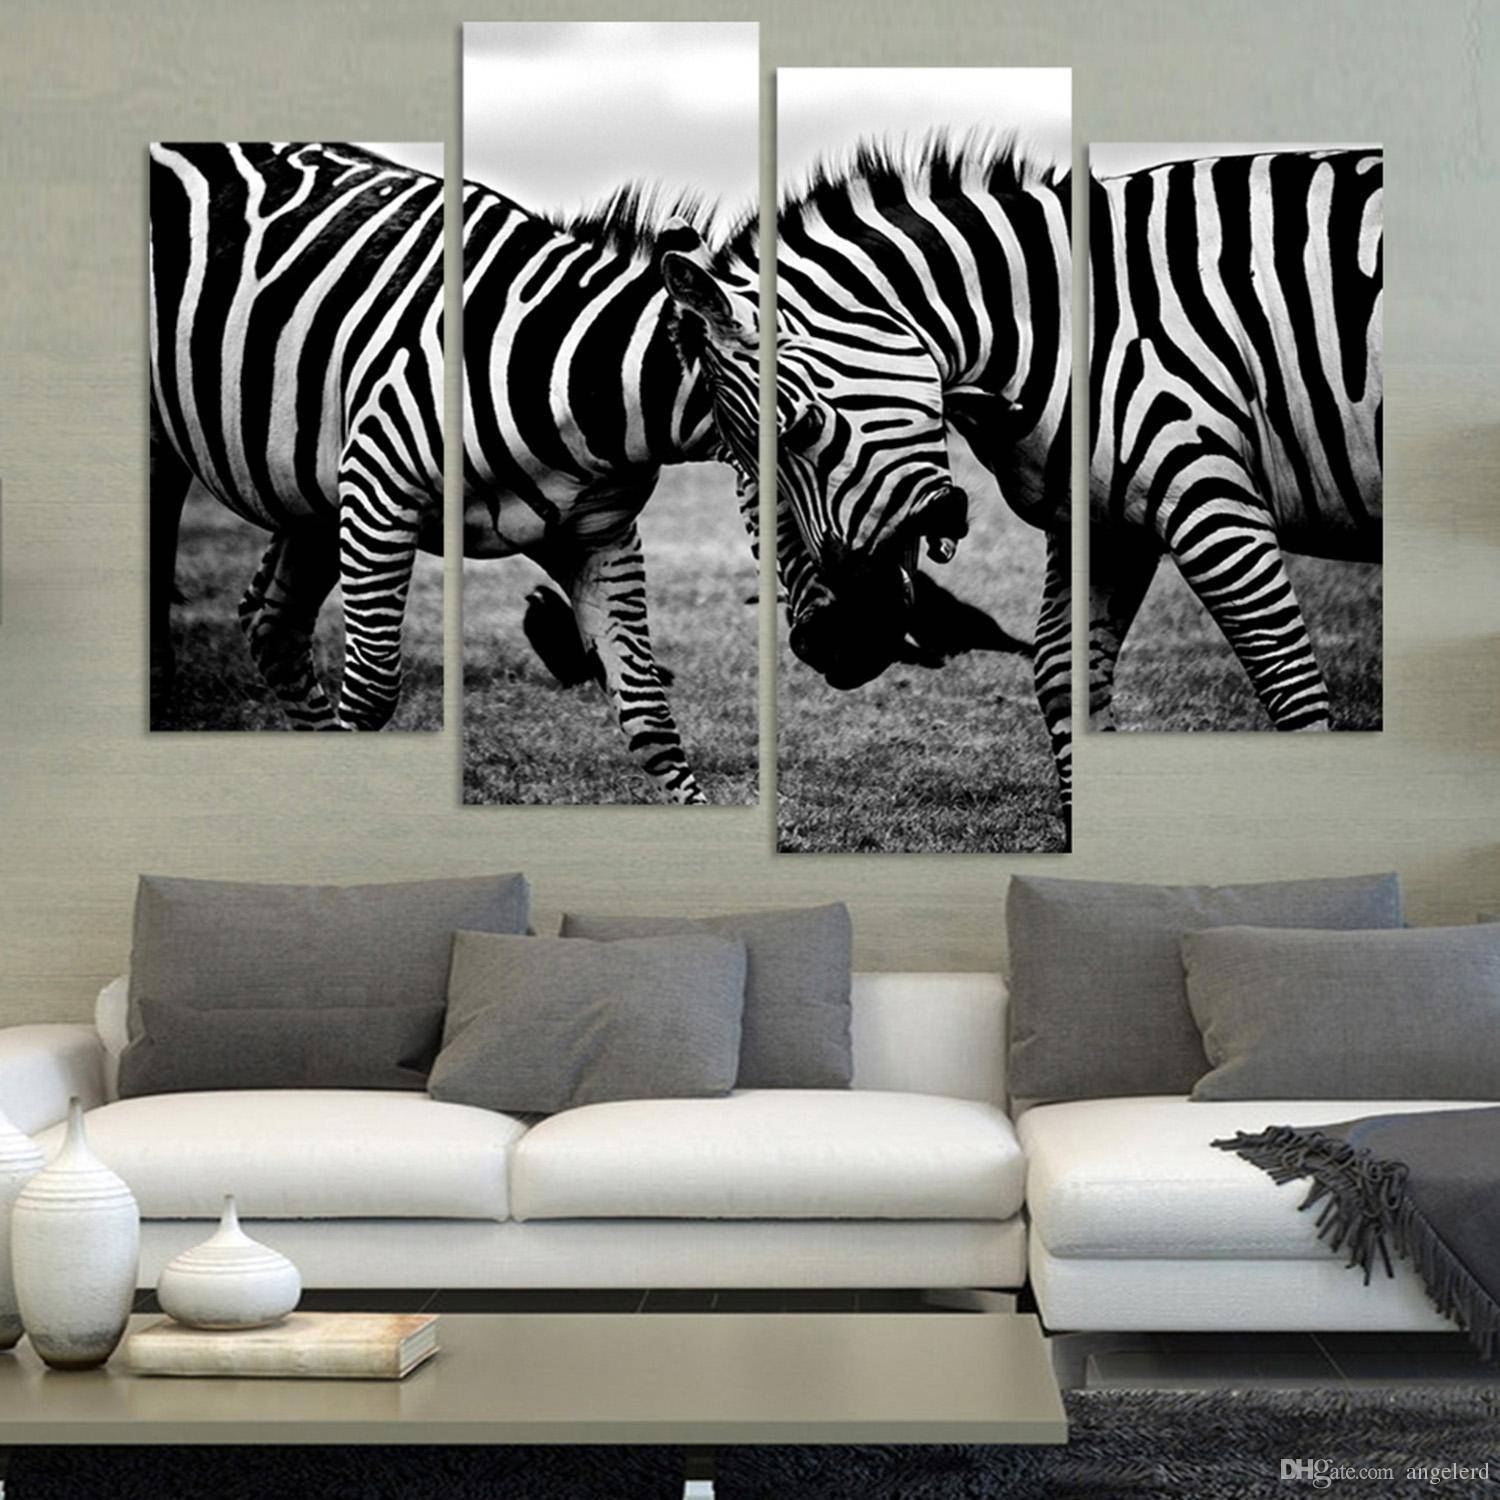 Articles With Animal Metal Wall Art Uk Tag: Animal Wall Art Pictures (View 10 of 25)